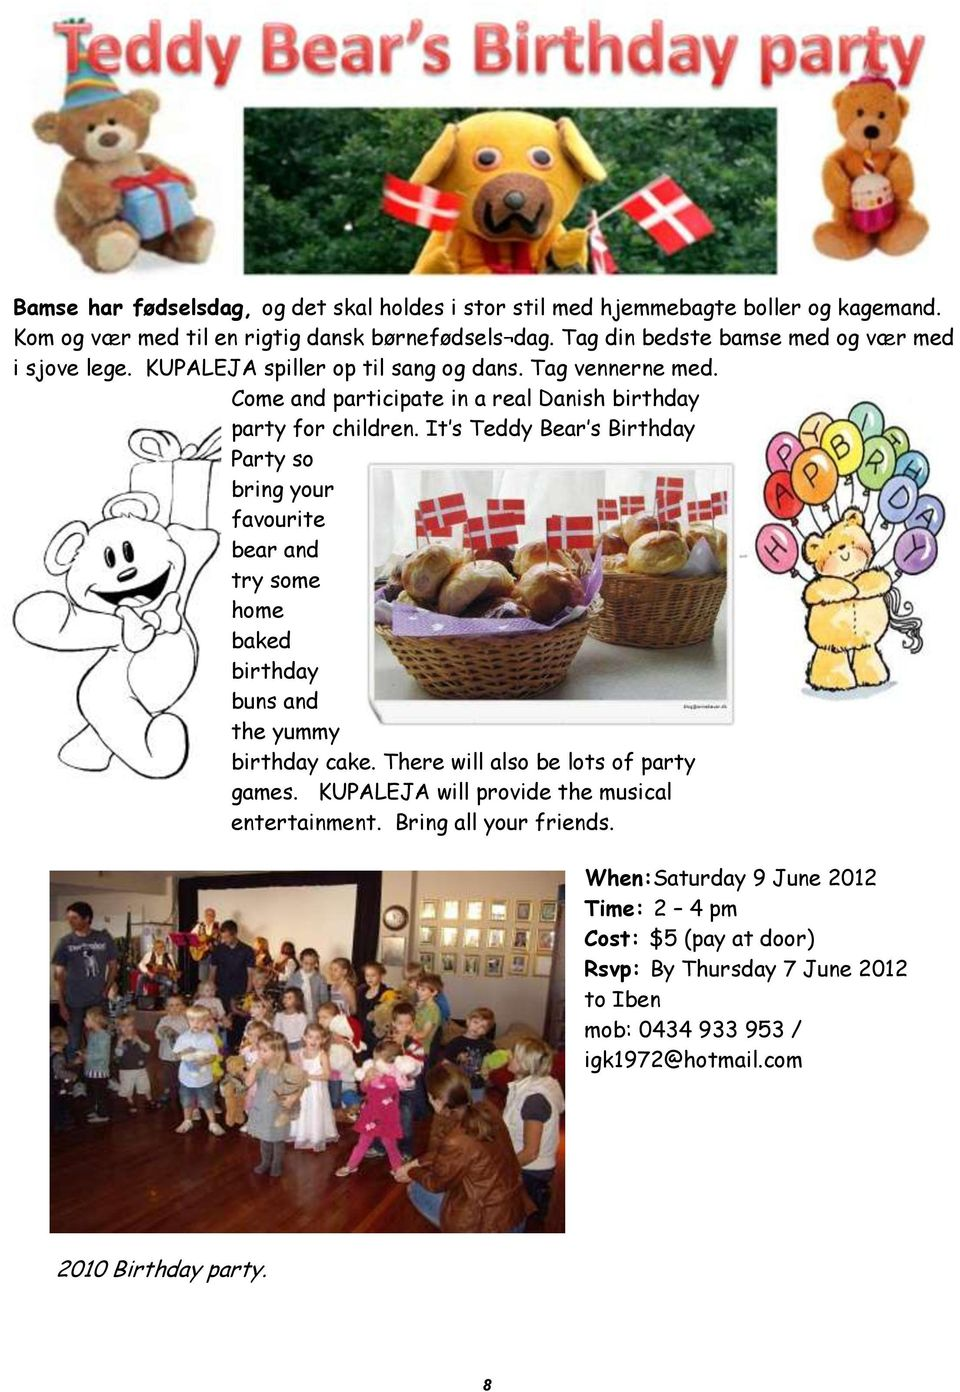 It s Teddy Bear s Birthday Party so bring your favourite bear and try some home baked birthday buns and the yummy birthday cake. There will also be lots of party games.